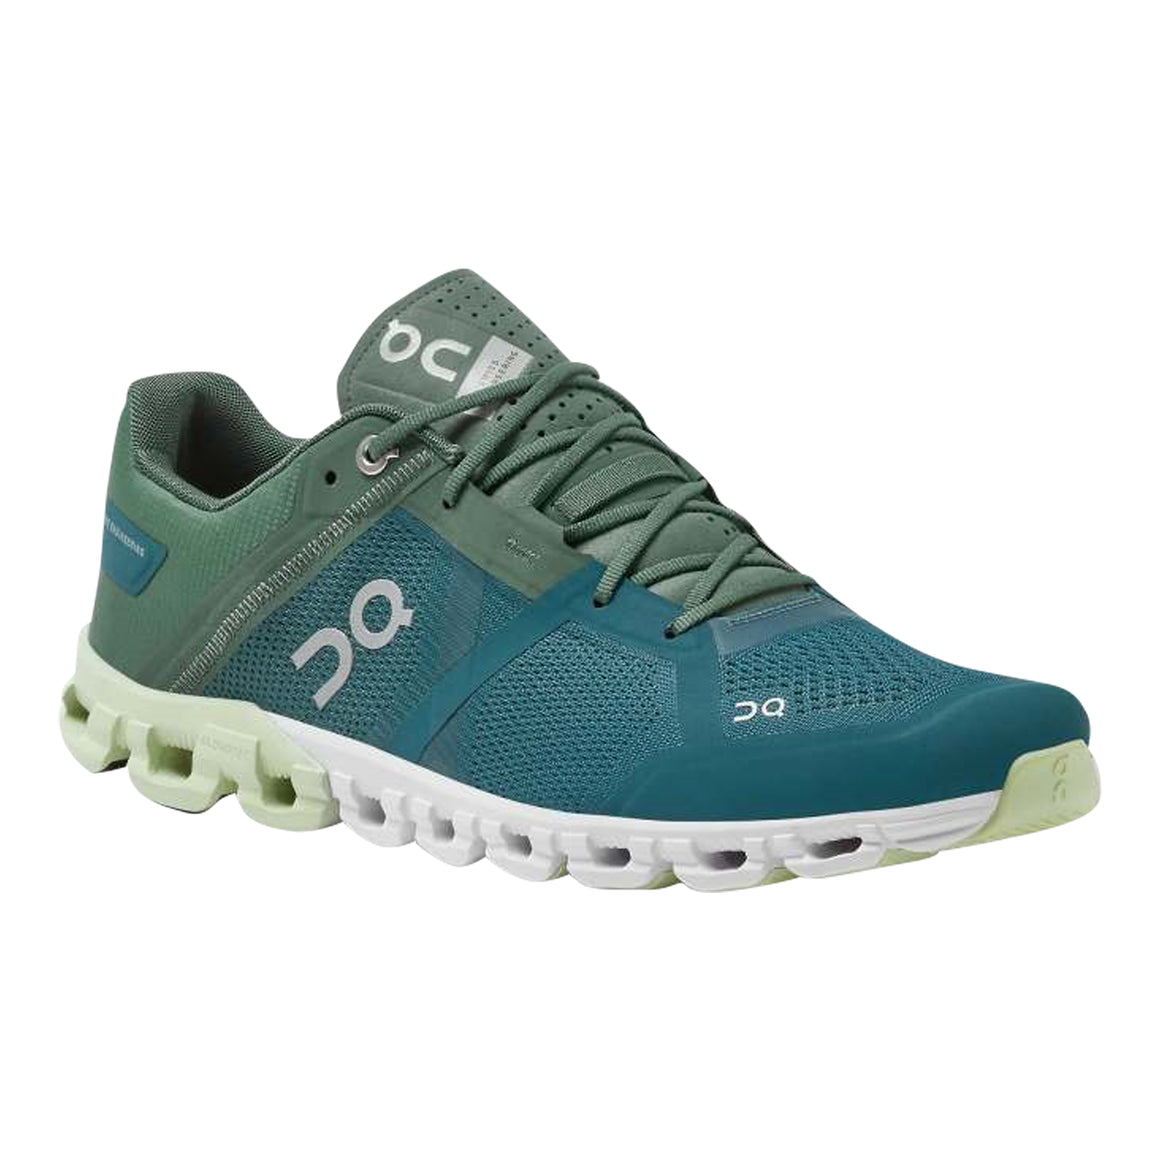 Cloudflow Running Shoes for Men in Sea/ Petrol